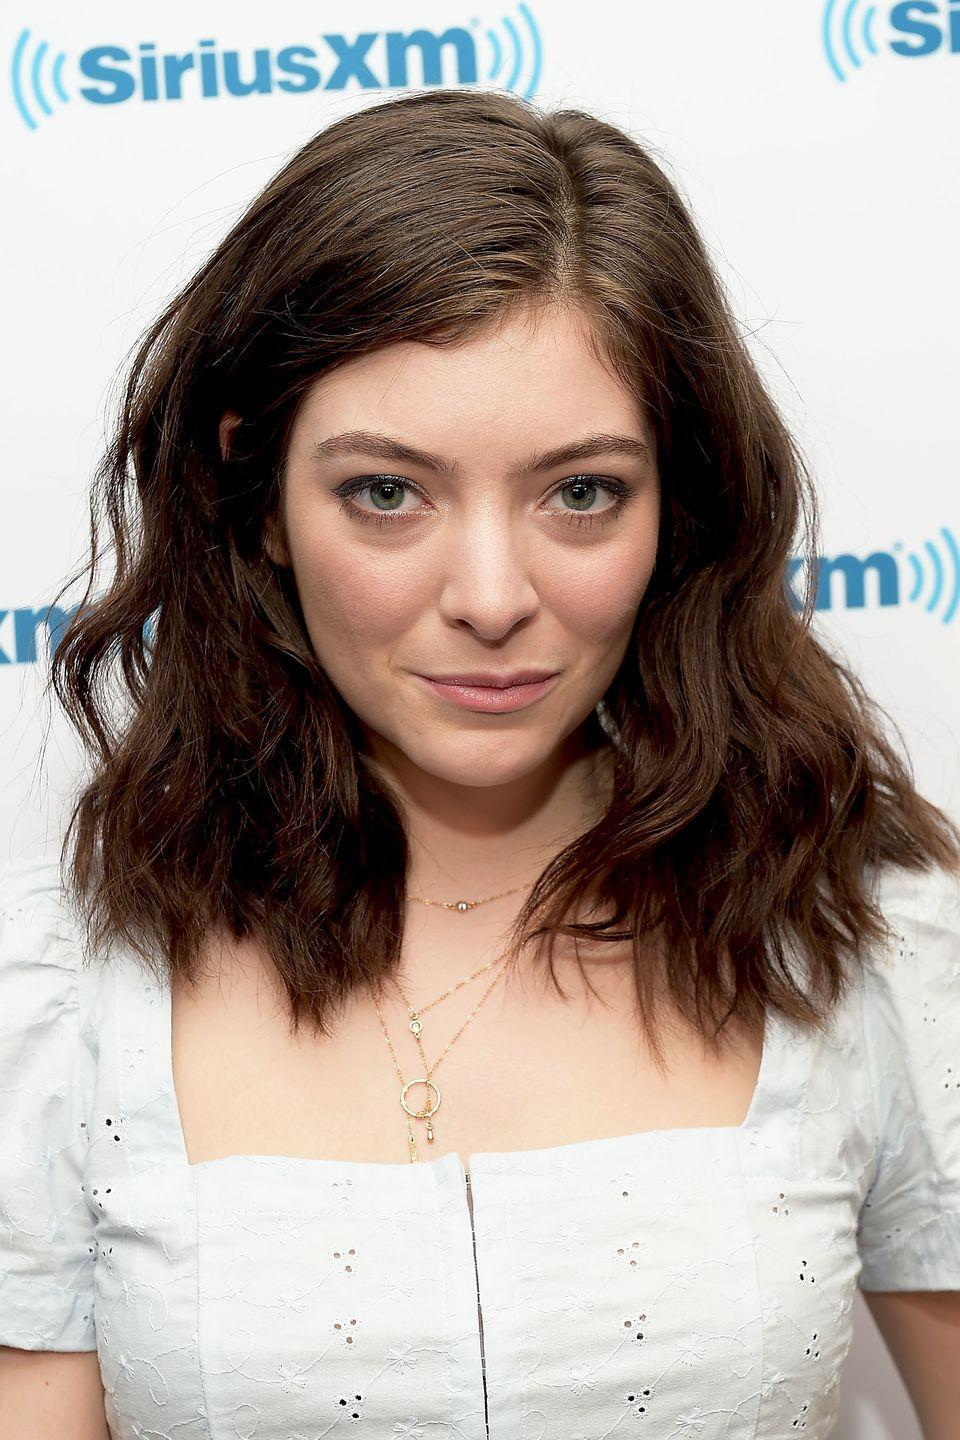 """<p><strong>Real name: </strong>Ella Yelich-O'Connor</p><p>On the topic of how she chose her stage name, Lorde explained to <a href=""""http://www.justjaredjr.com/2017/05/15/lorde-reveals-why-she-doesnt-go-by-her-real-name-ella-yelich-oconnor/"""" rel=""""nofollow noopener"""" target=""""_blank"""" data-ylk=""""slk:Rolling Stone"""" class=""""link rapid-noclick-resp"""">Rolling Stone</a>: """"I don't know, it's a bit boring: Ella Yelich-O'Connor. Can you imagine them shouting it at a festival? It just made sense to me to elevate it.""""</p>"""